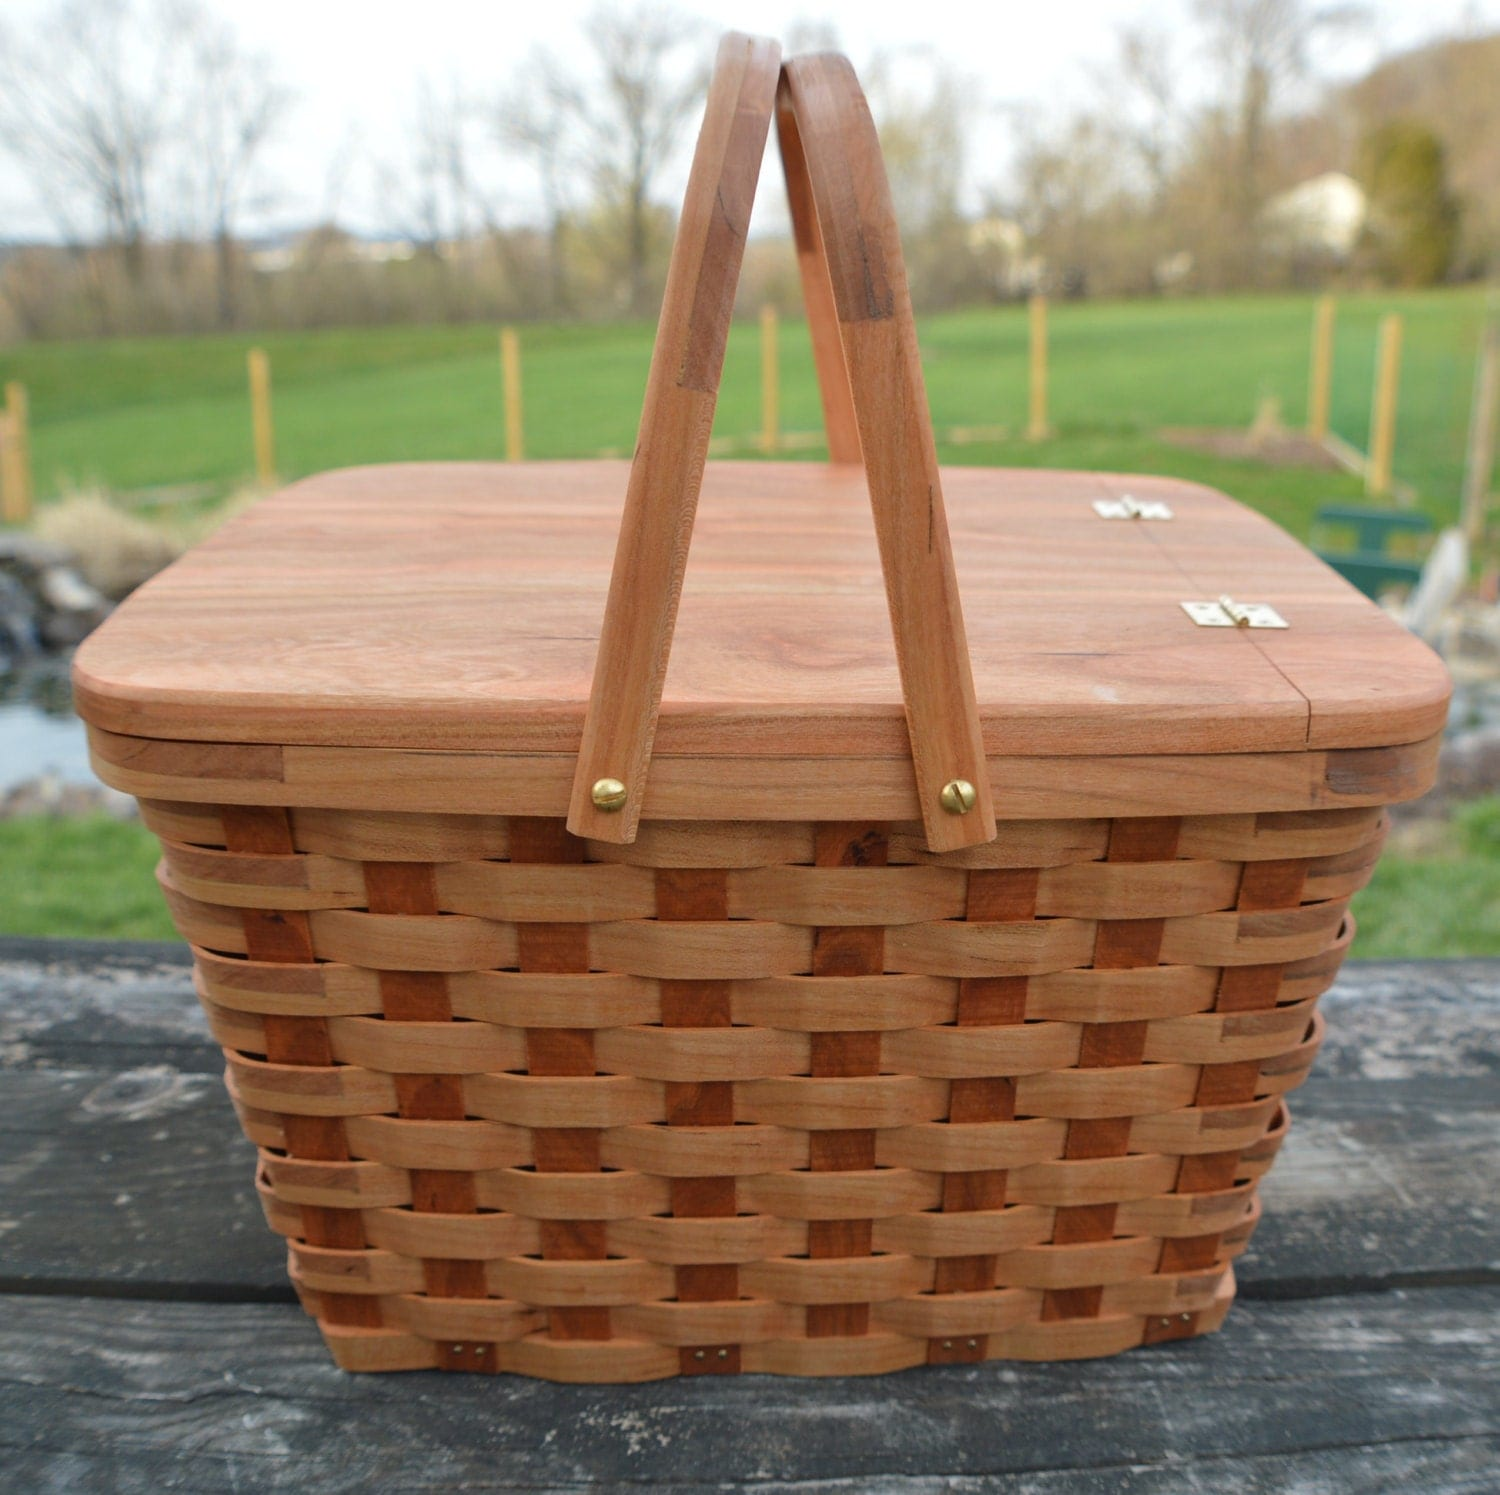 Picnic Basket Pie : Pie carrier tote basket picnic handles by basketsbydebi